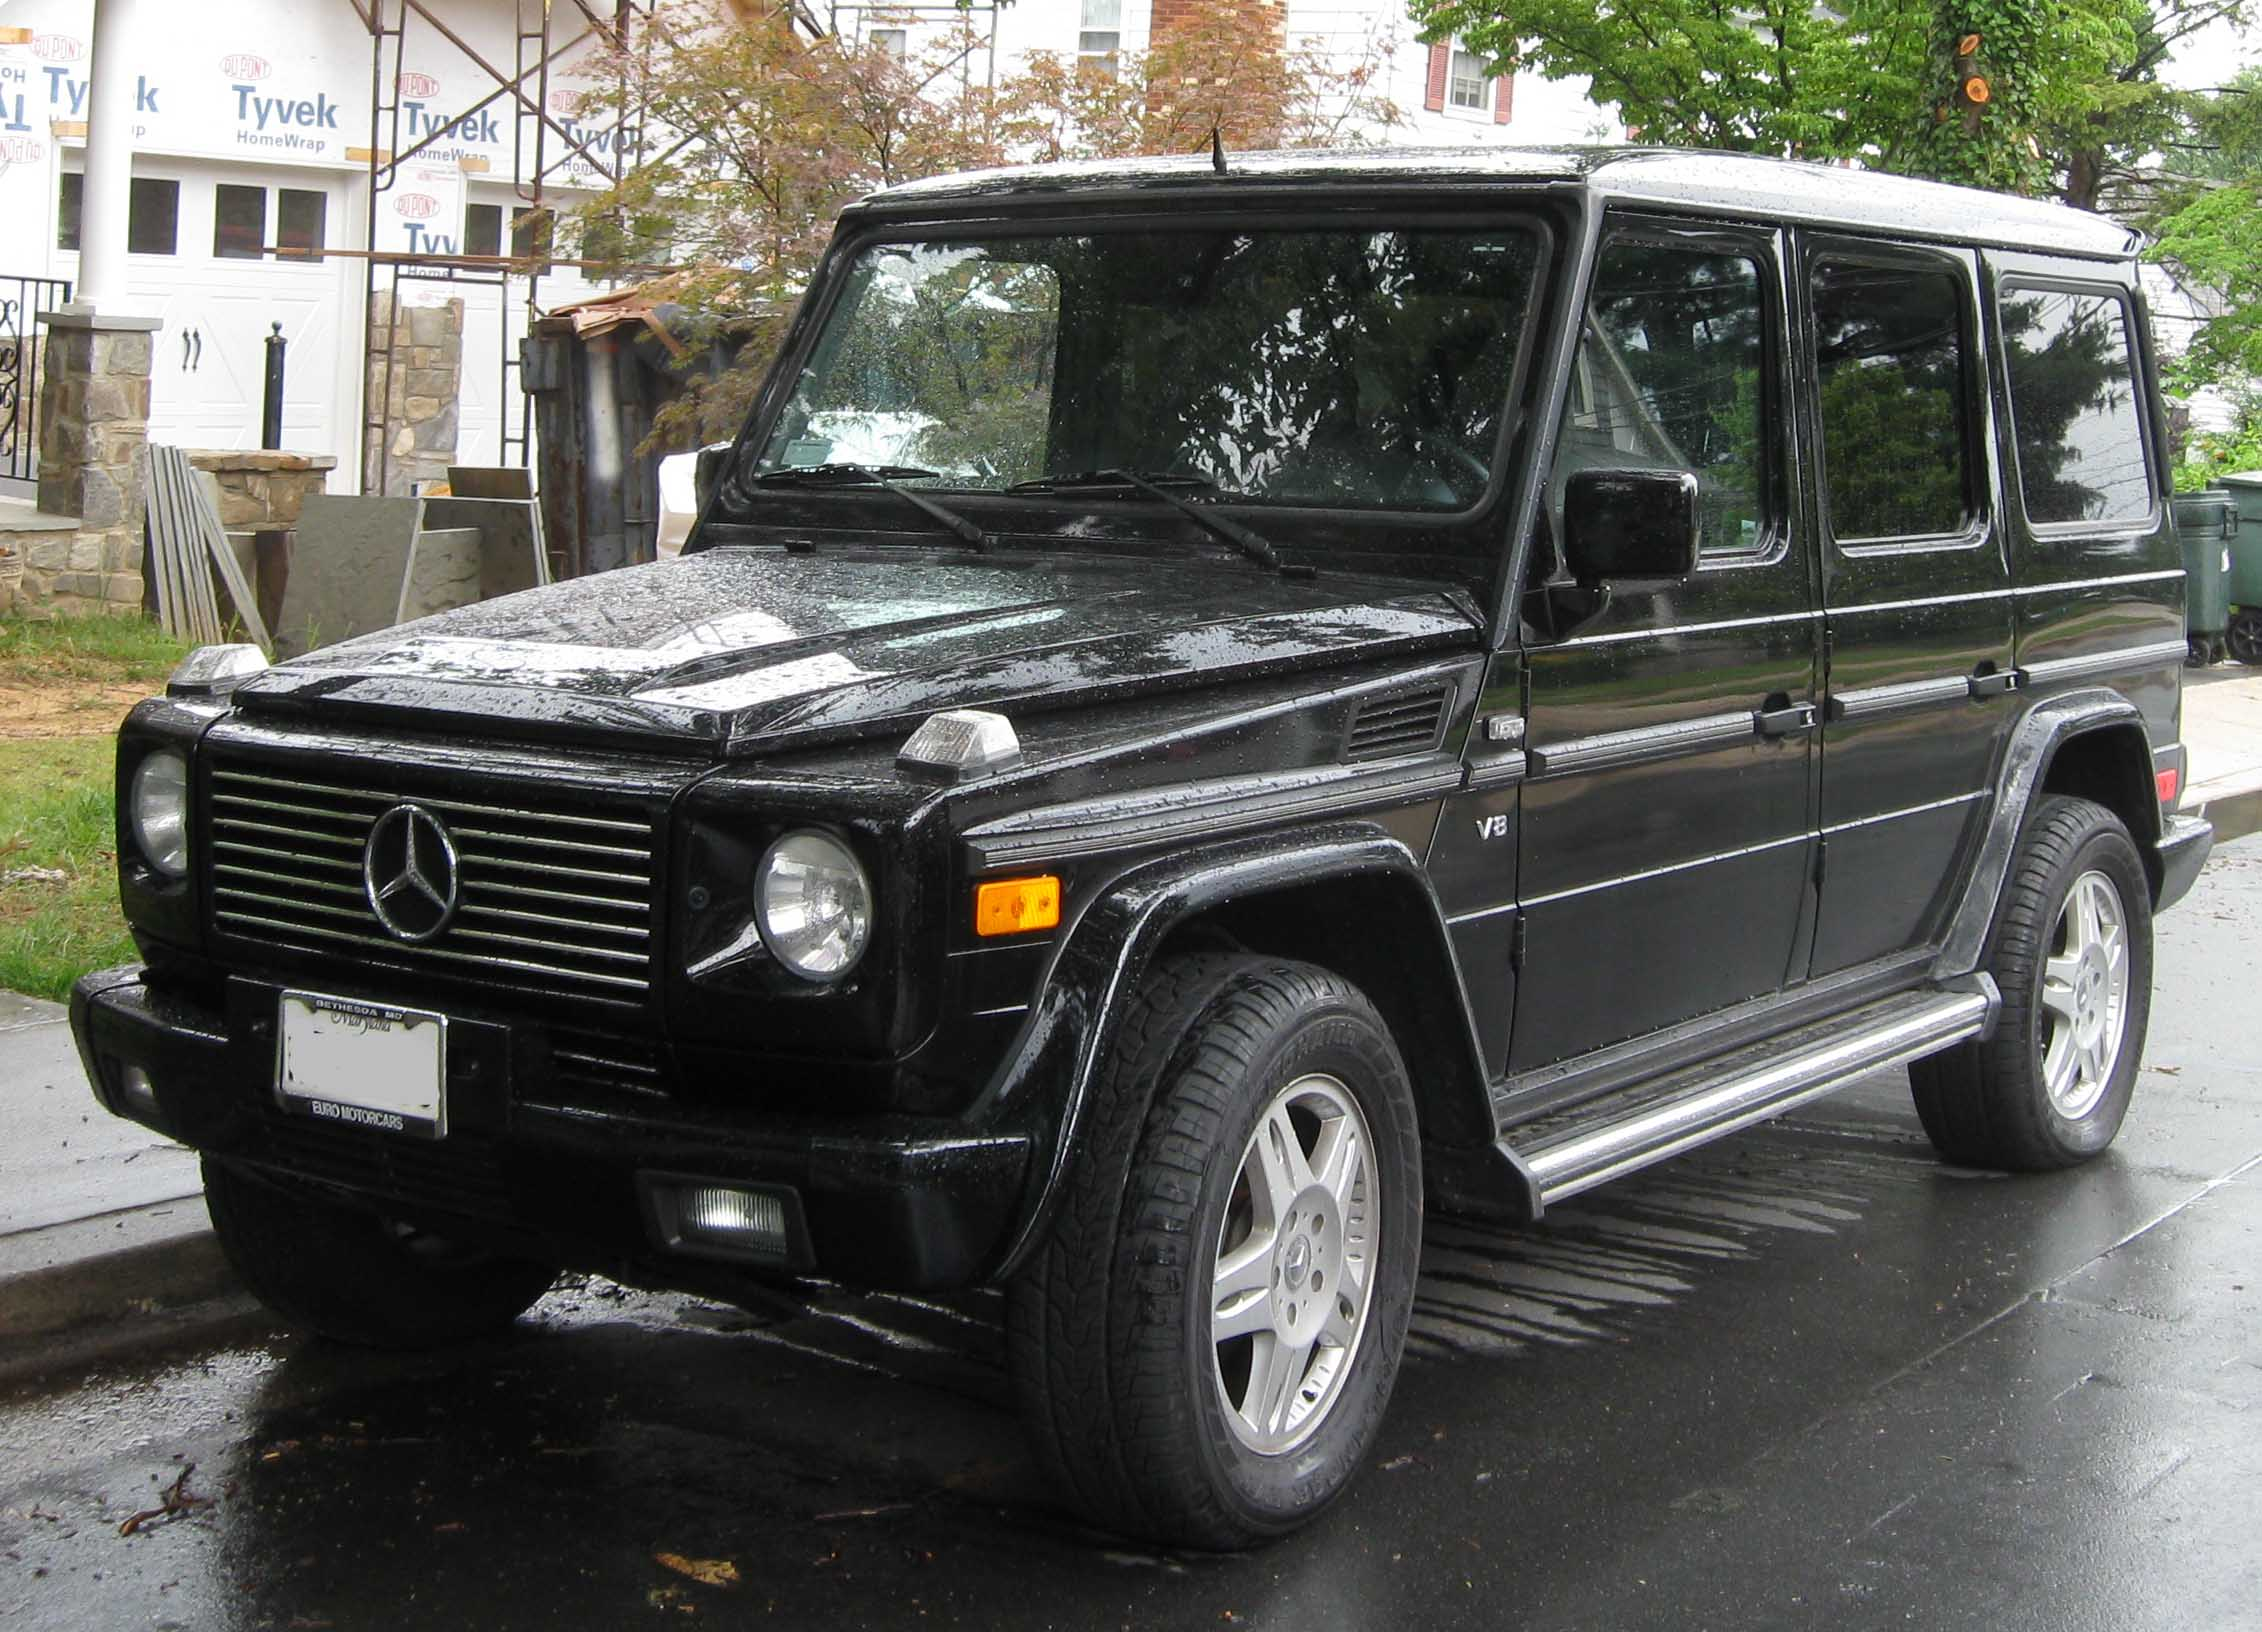 http://upload.wikimedia.org/wikipedia/commons/1/10/Mercedes-Benz_G500.jpg